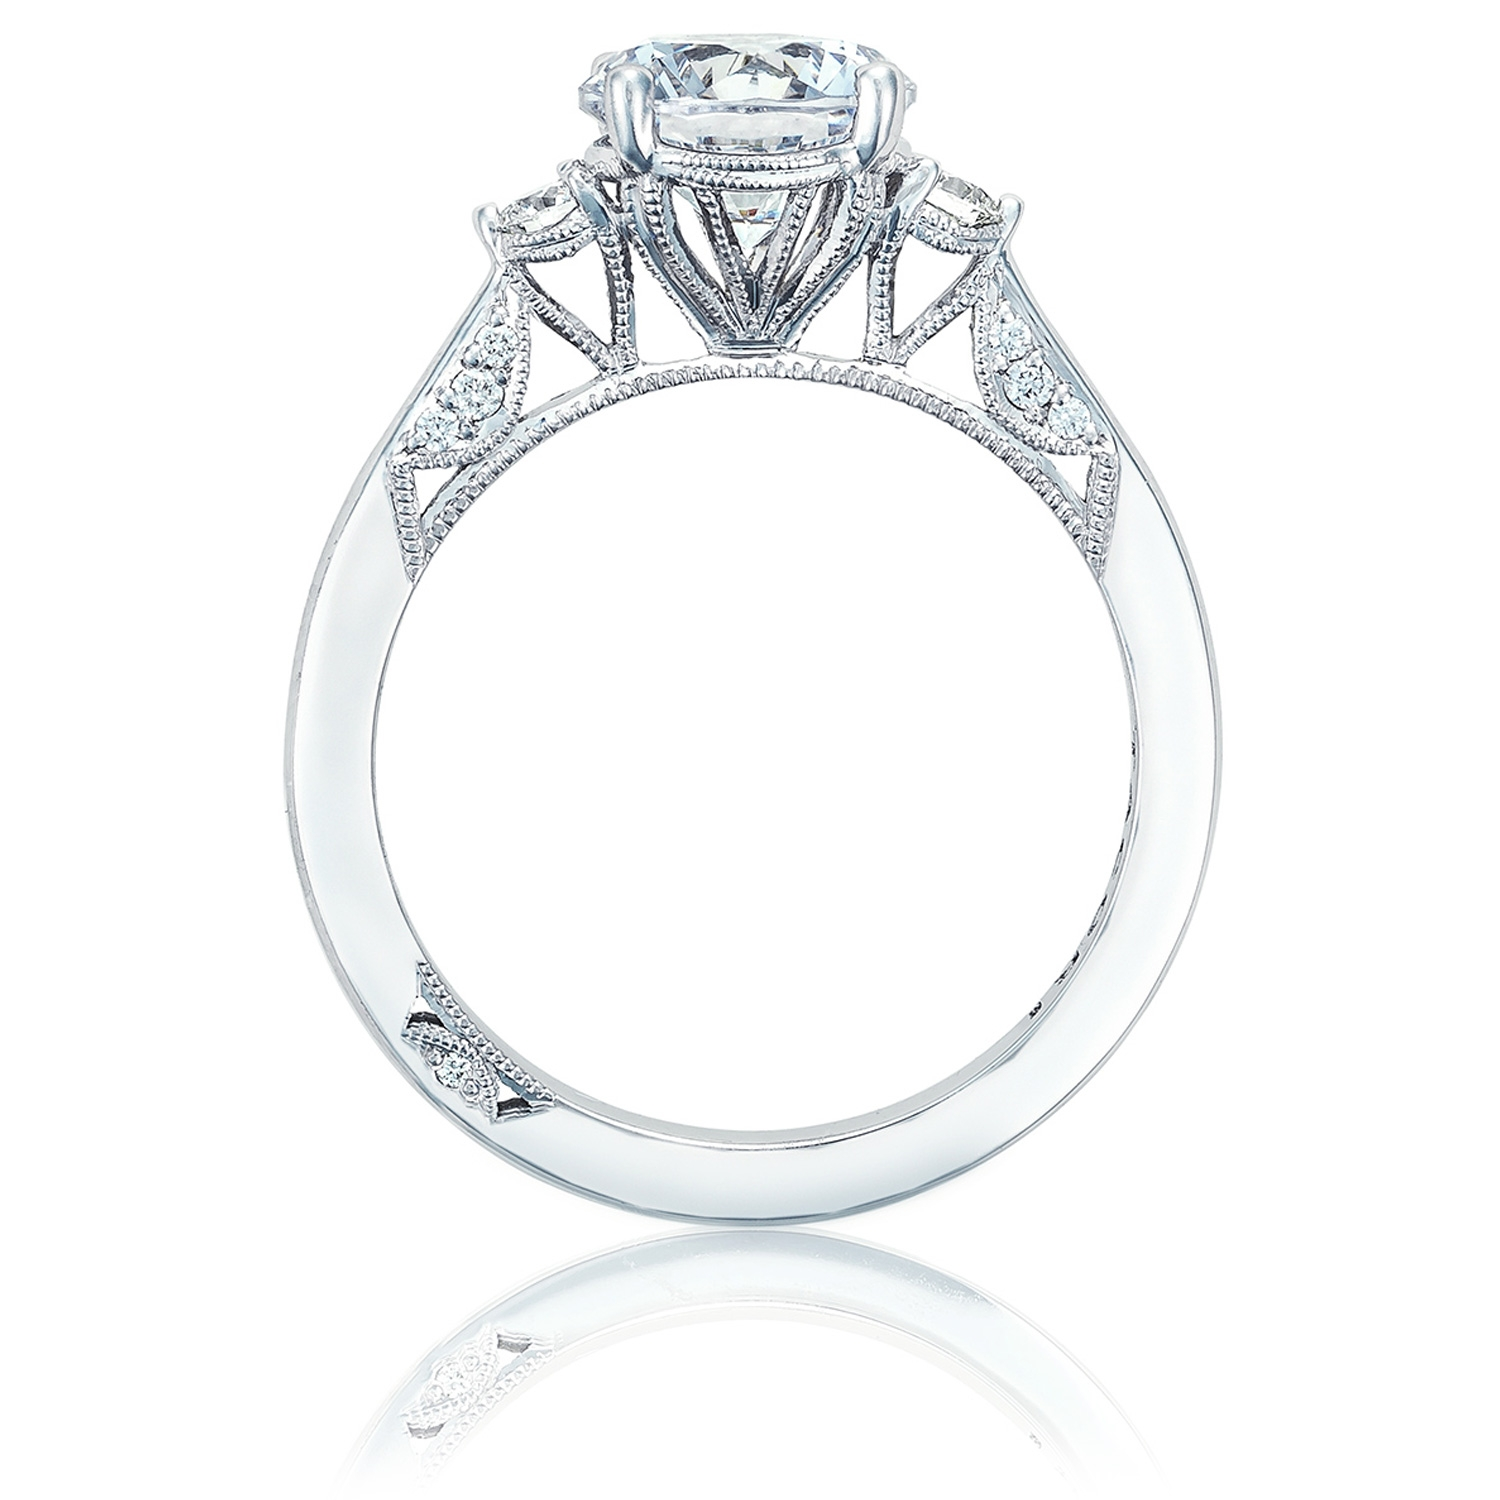 2656RD75 Platinum Simply Tacori Engagement Ring Alternative View 1